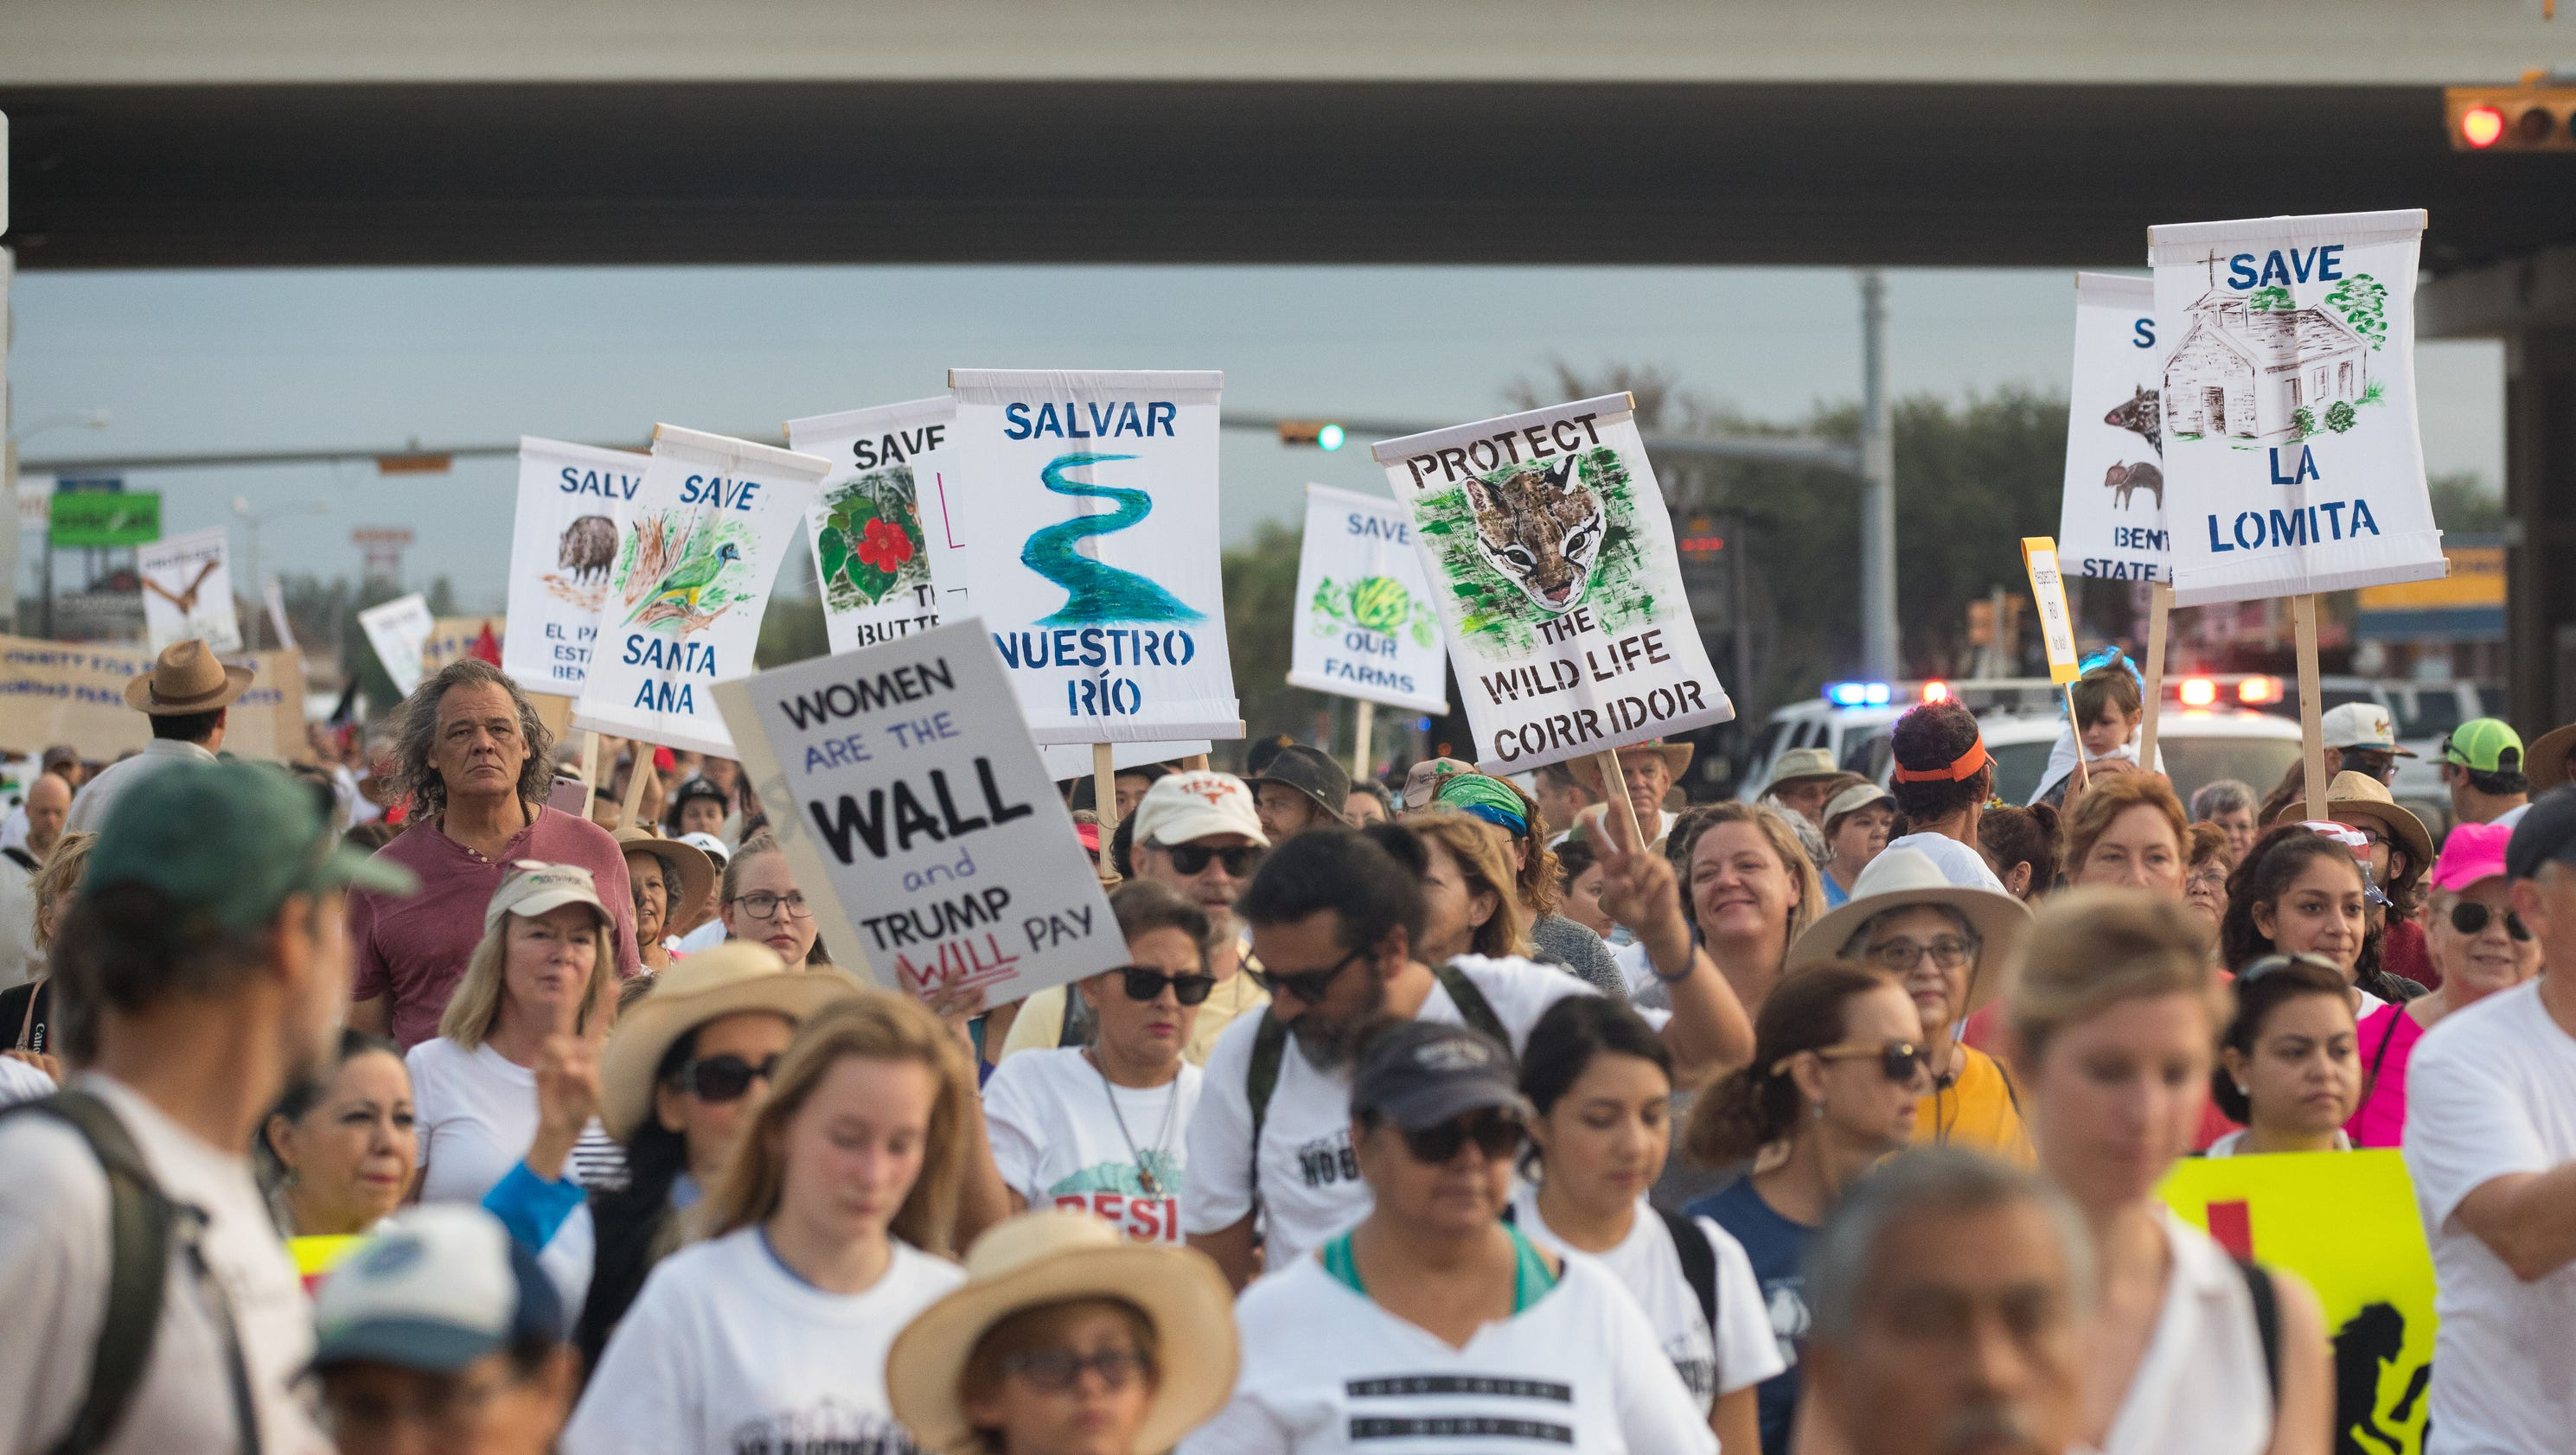 Marchers protest plans for border wall in South Texas